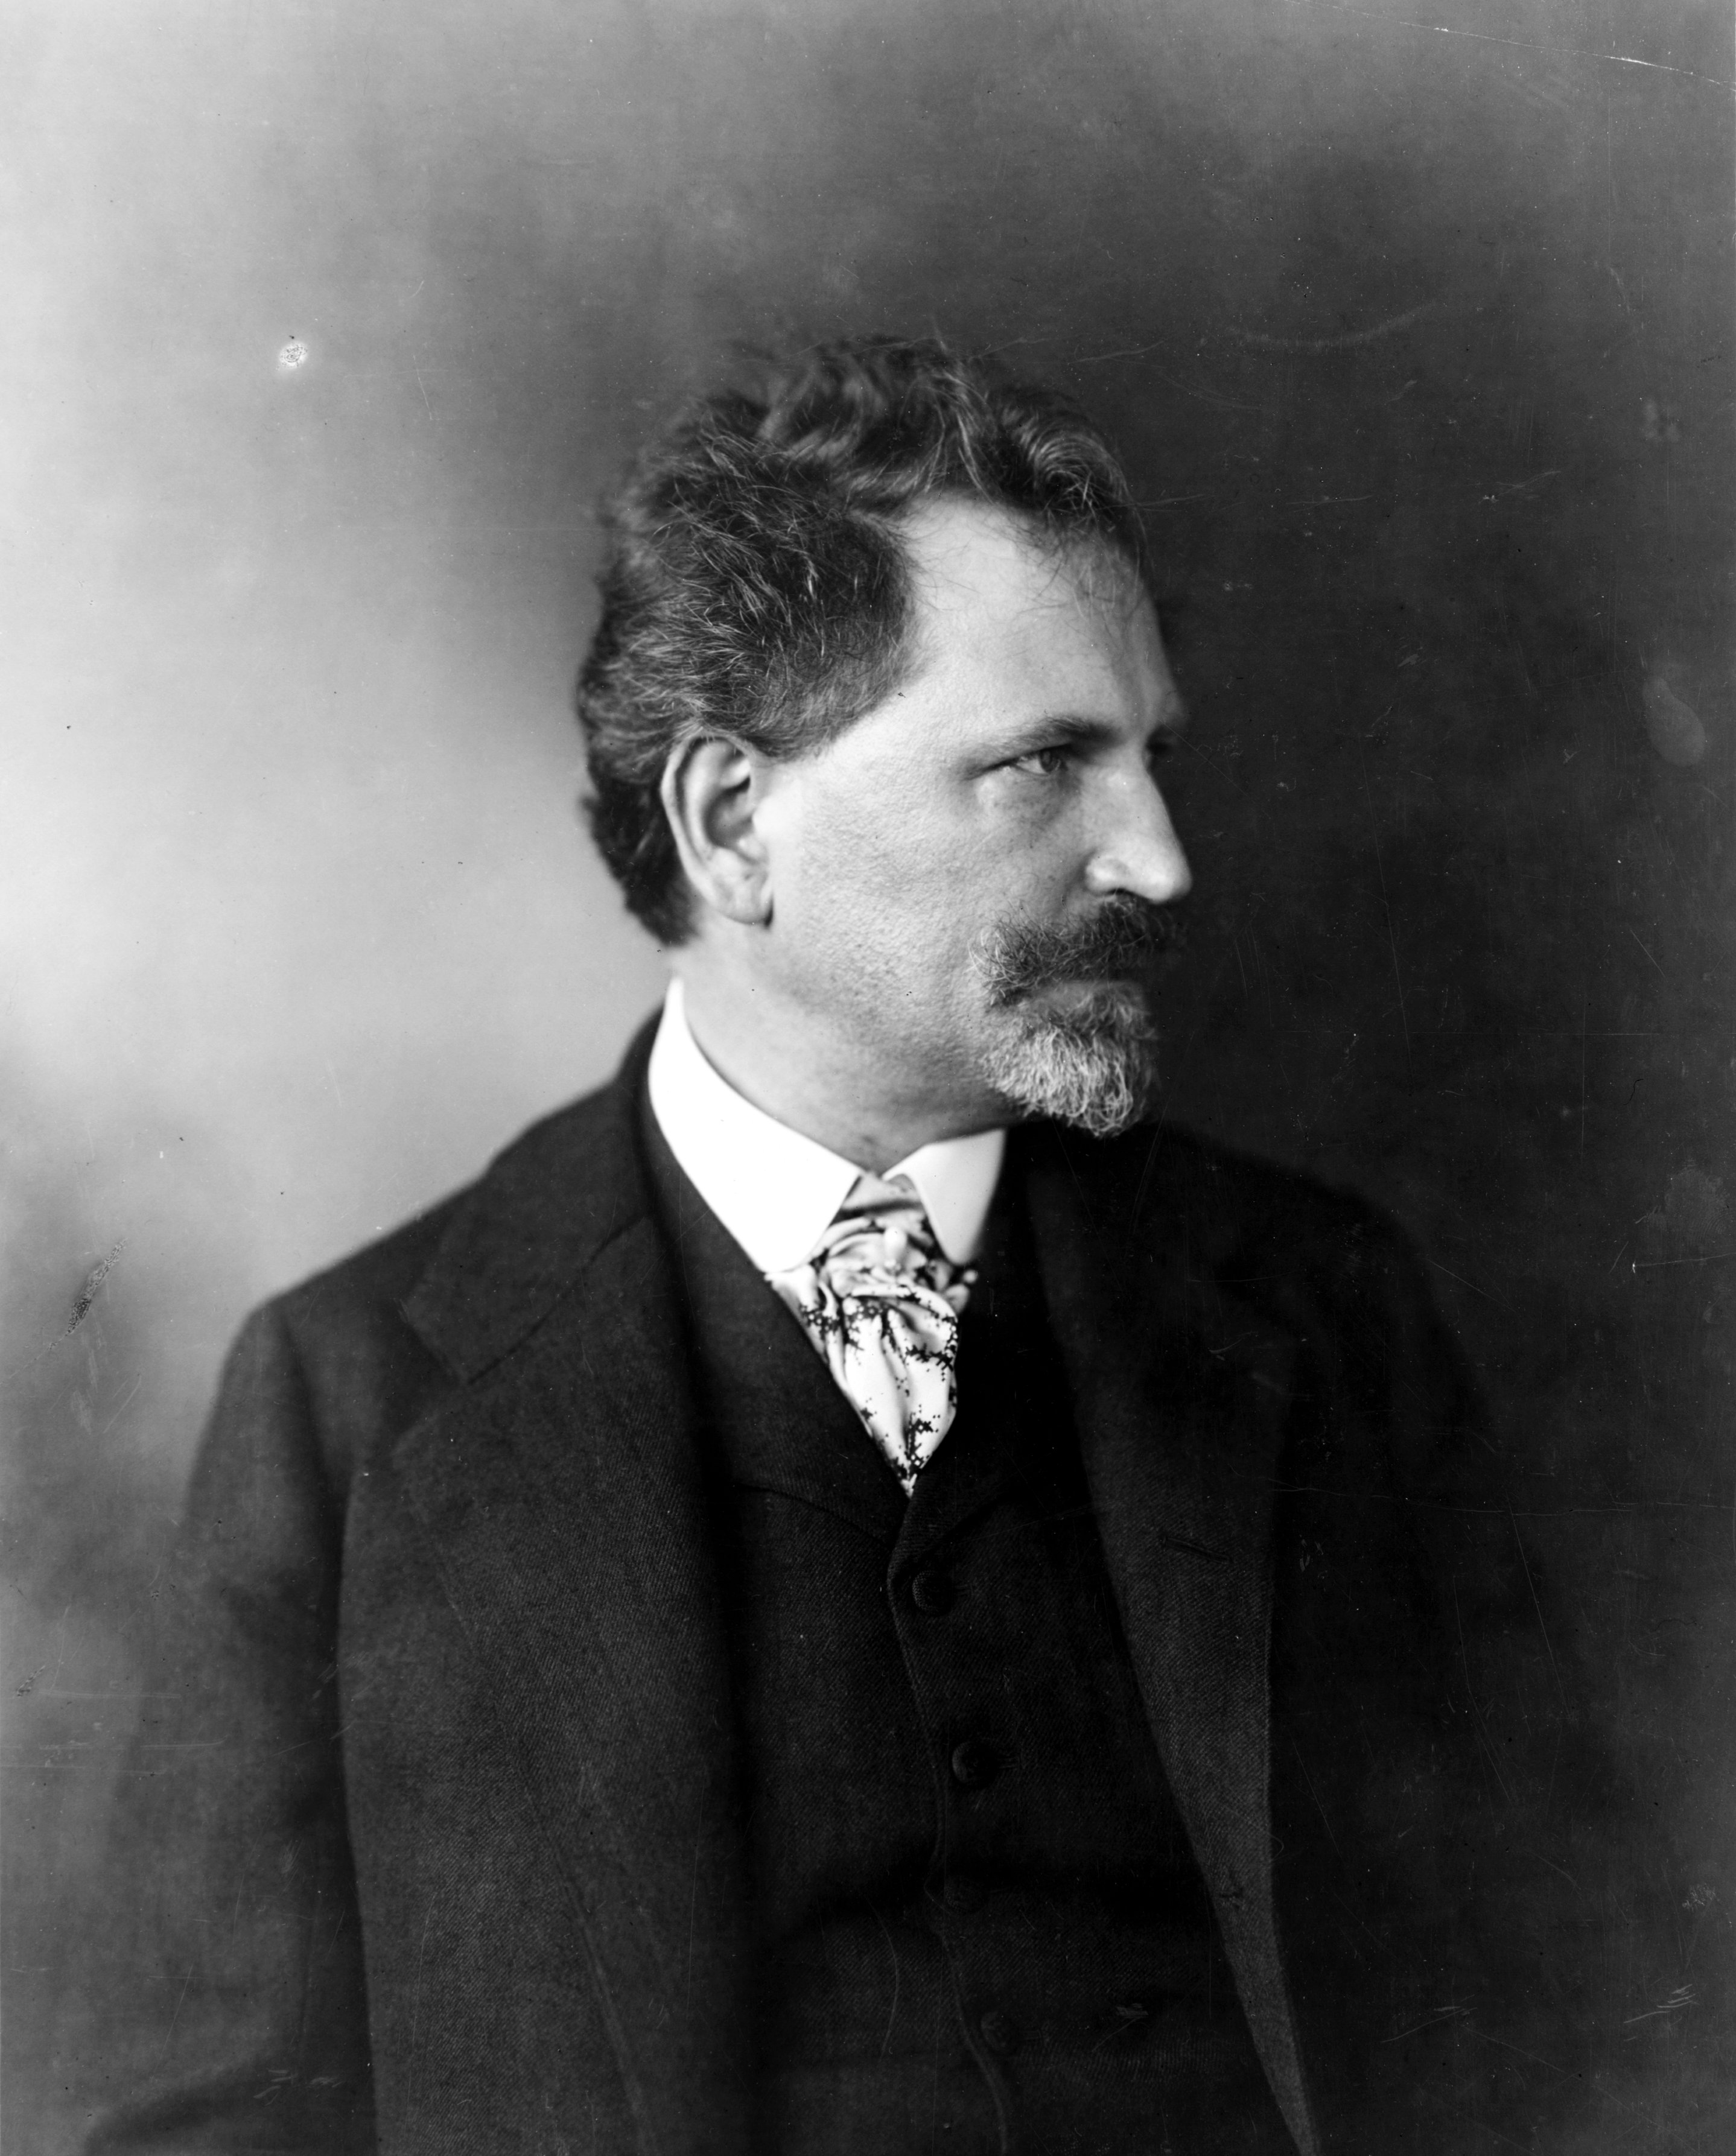 Portrait of Alphonse Mucha